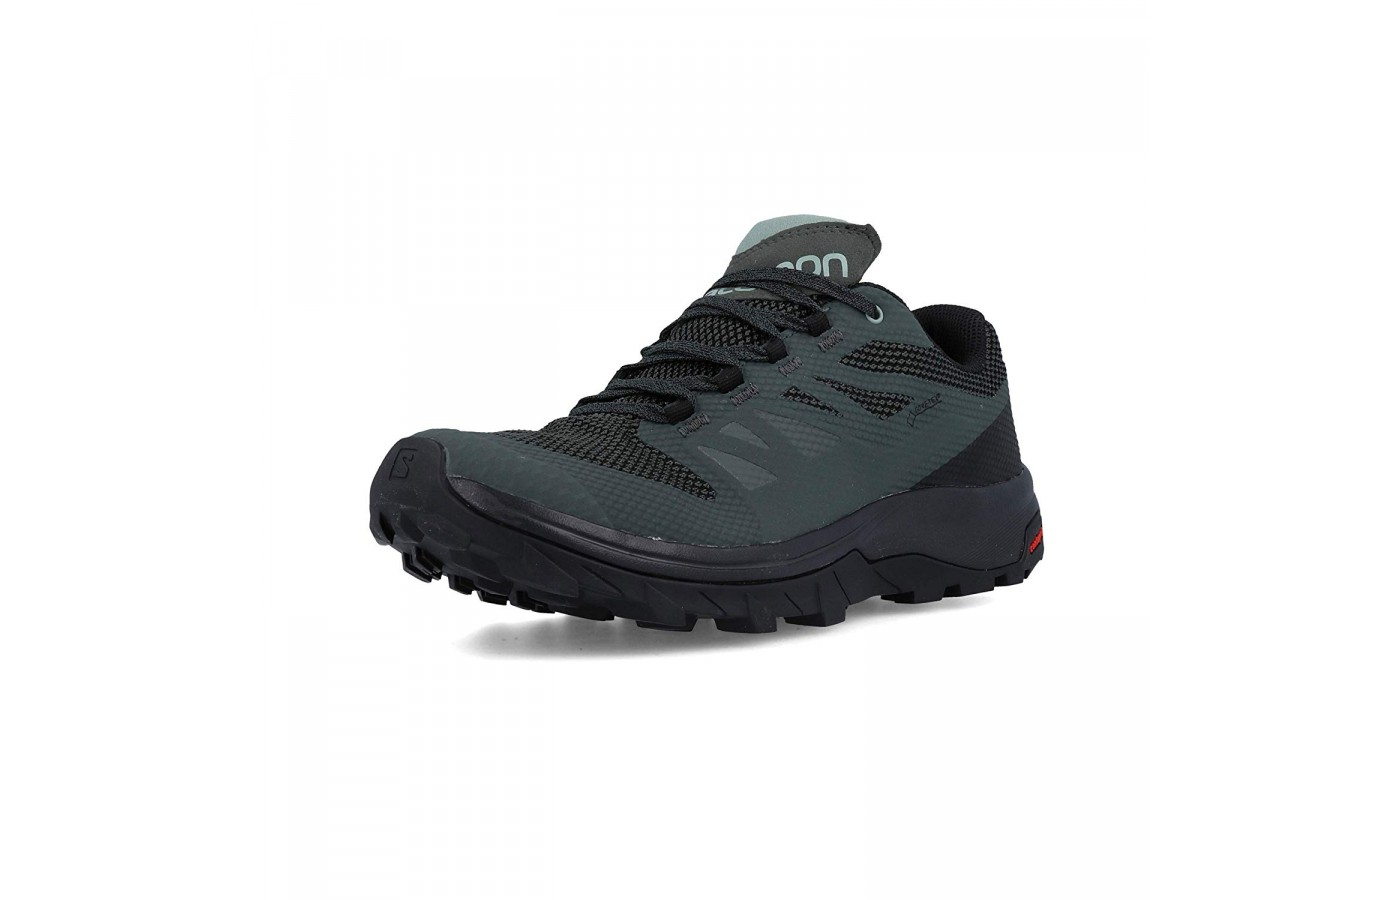 These Salomon shoes are meant to be used for hiking.